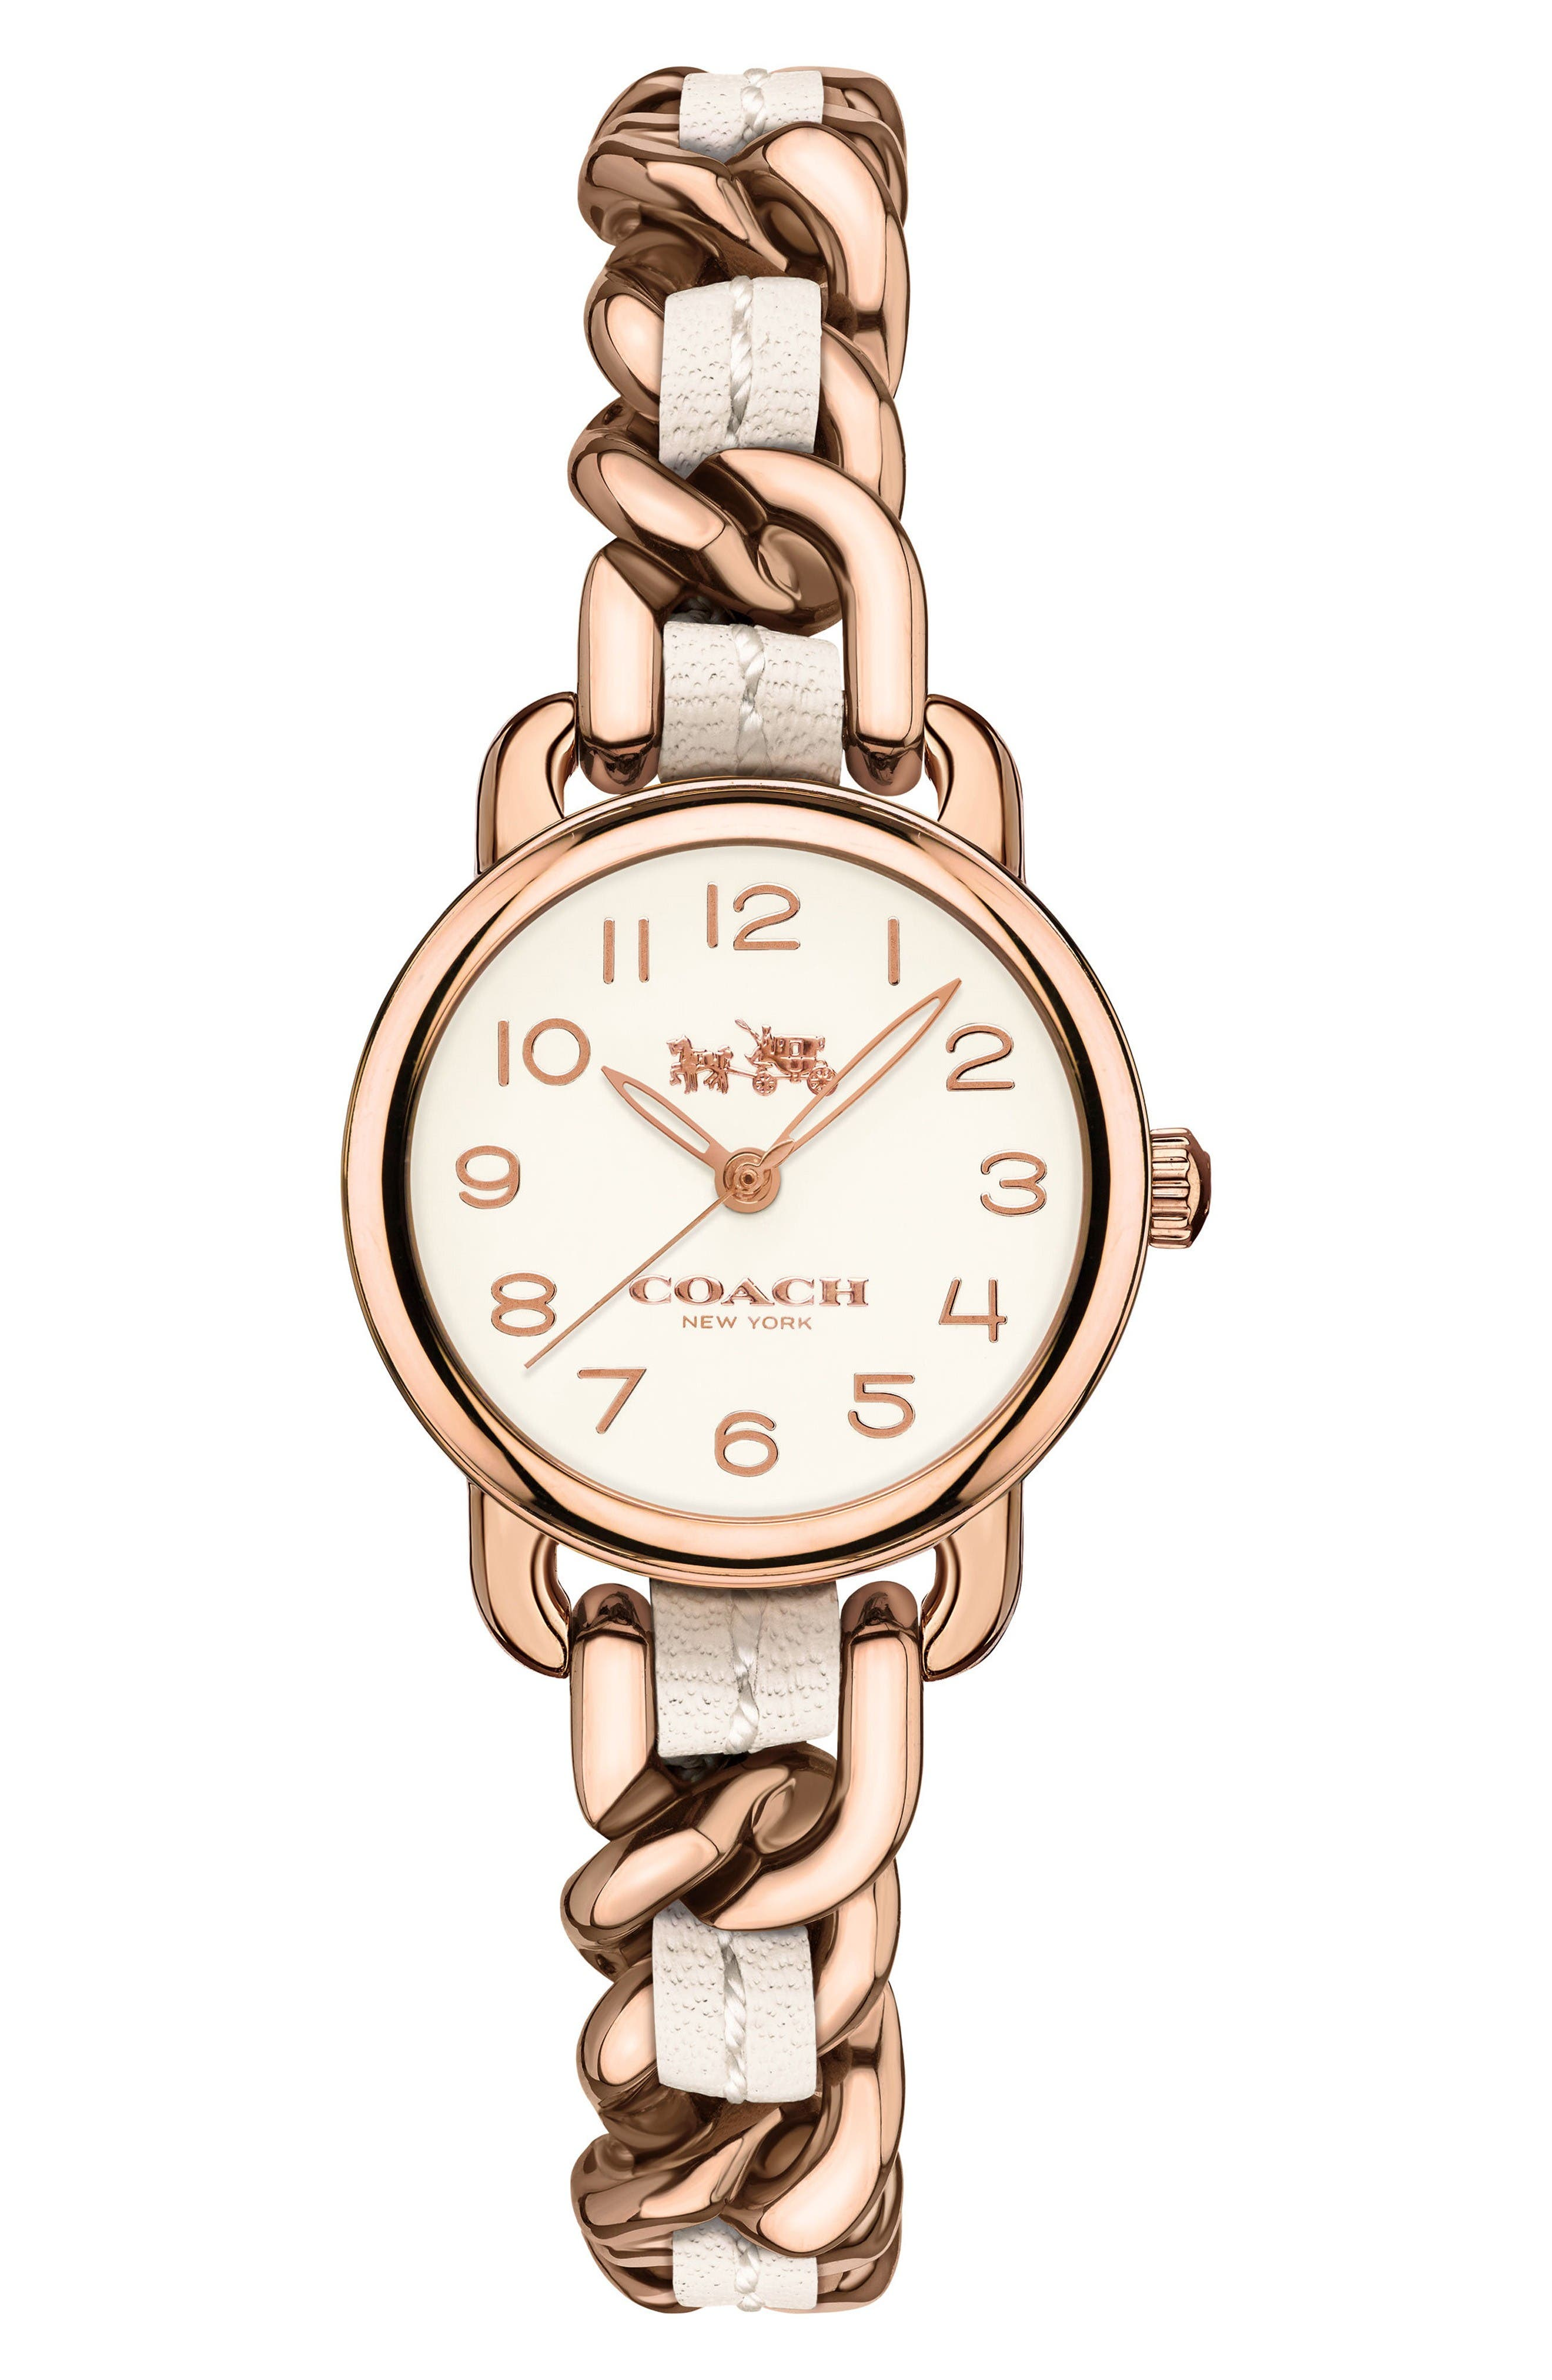 Main Image - COACH Delancey Leather Chain Watch, 23mm